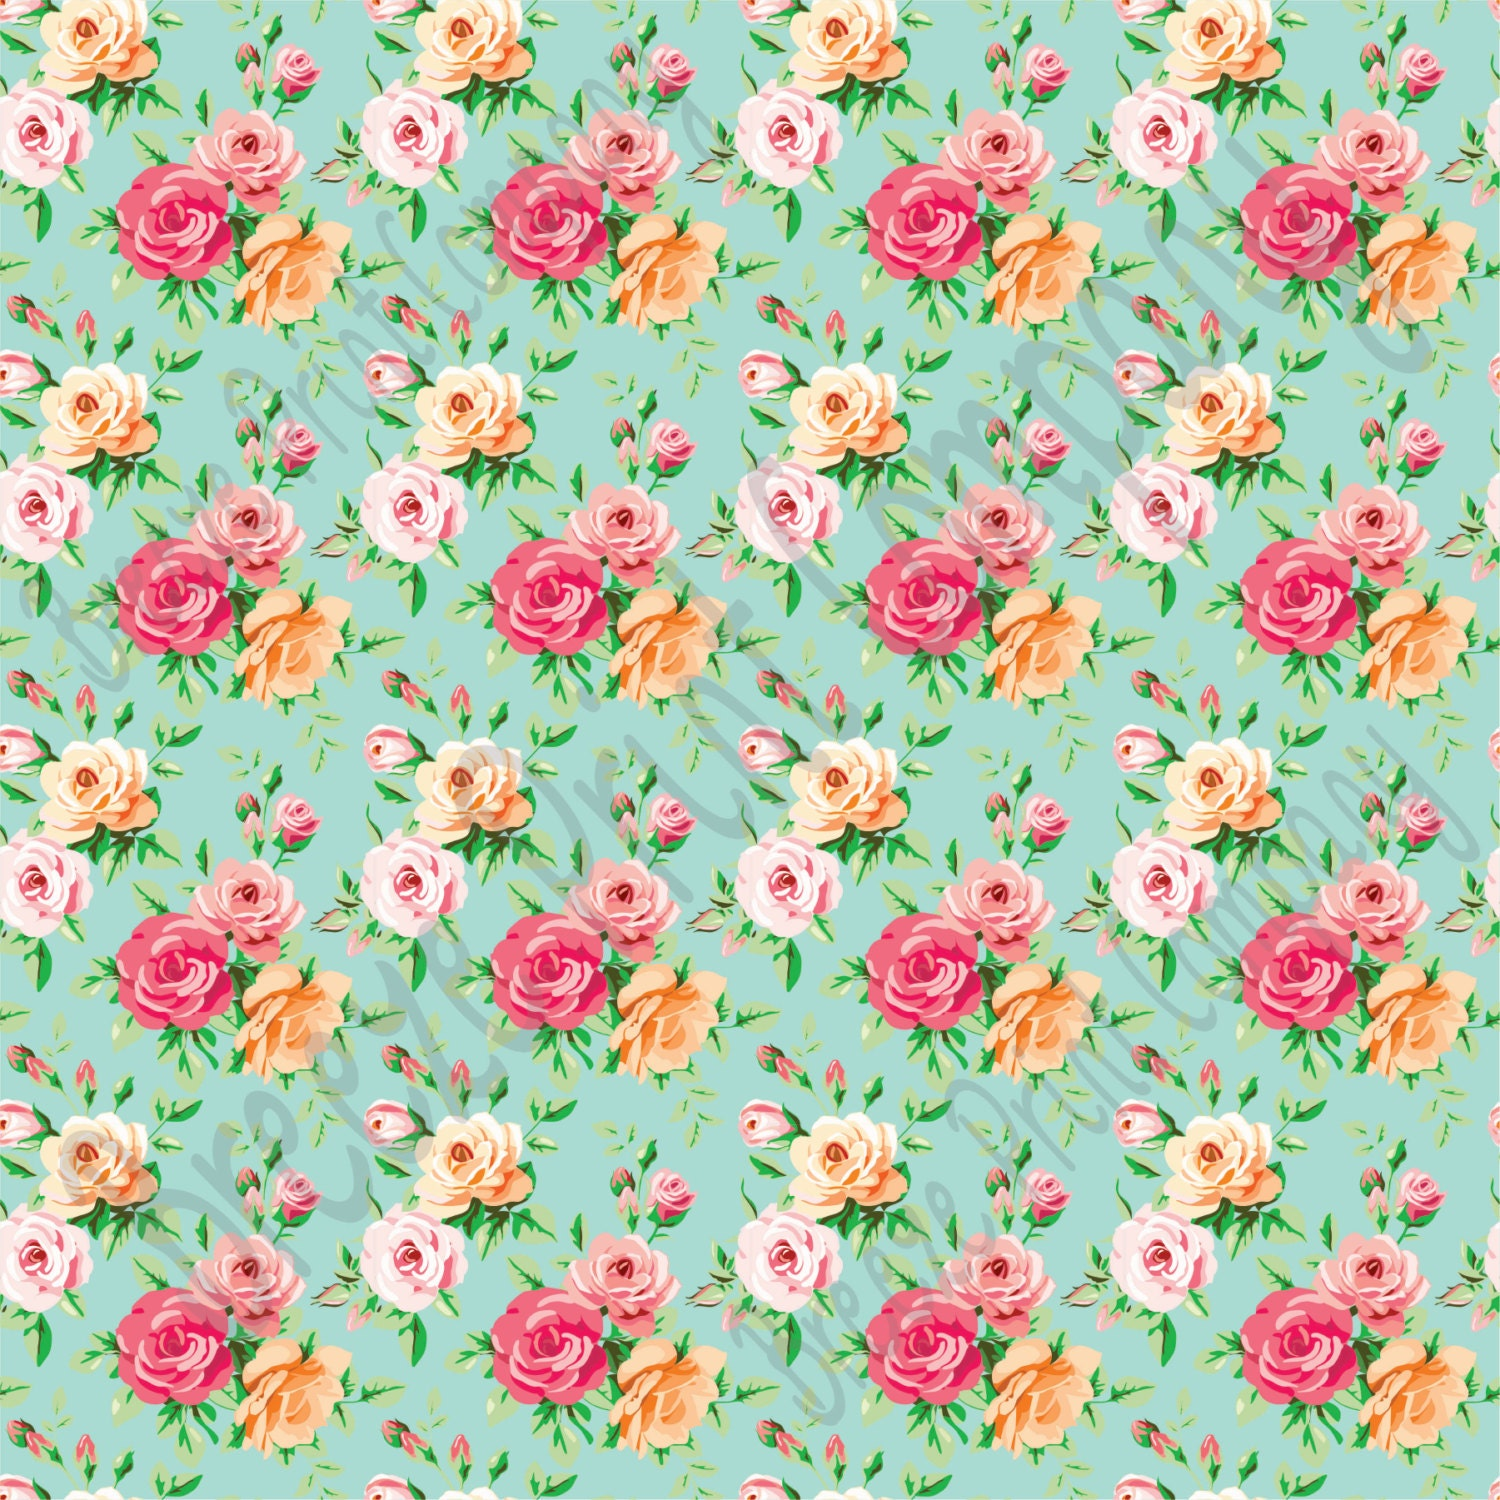 Rose Floral Heat Transfer Or Adhesive Vinyl Sheet With Mint